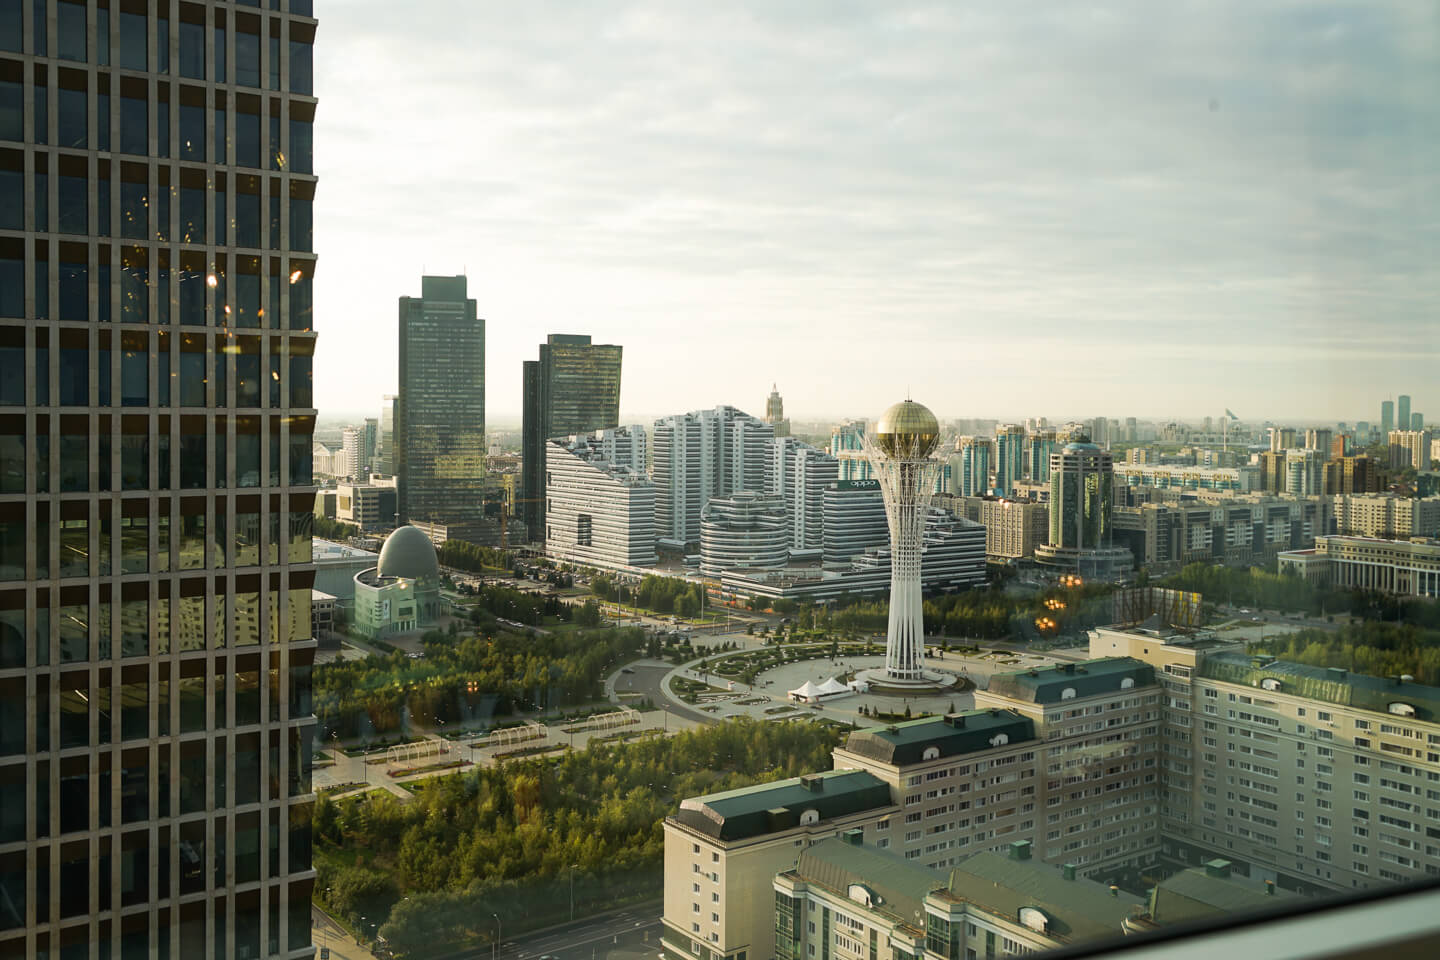 Nur-Sultan panoramic view of the city